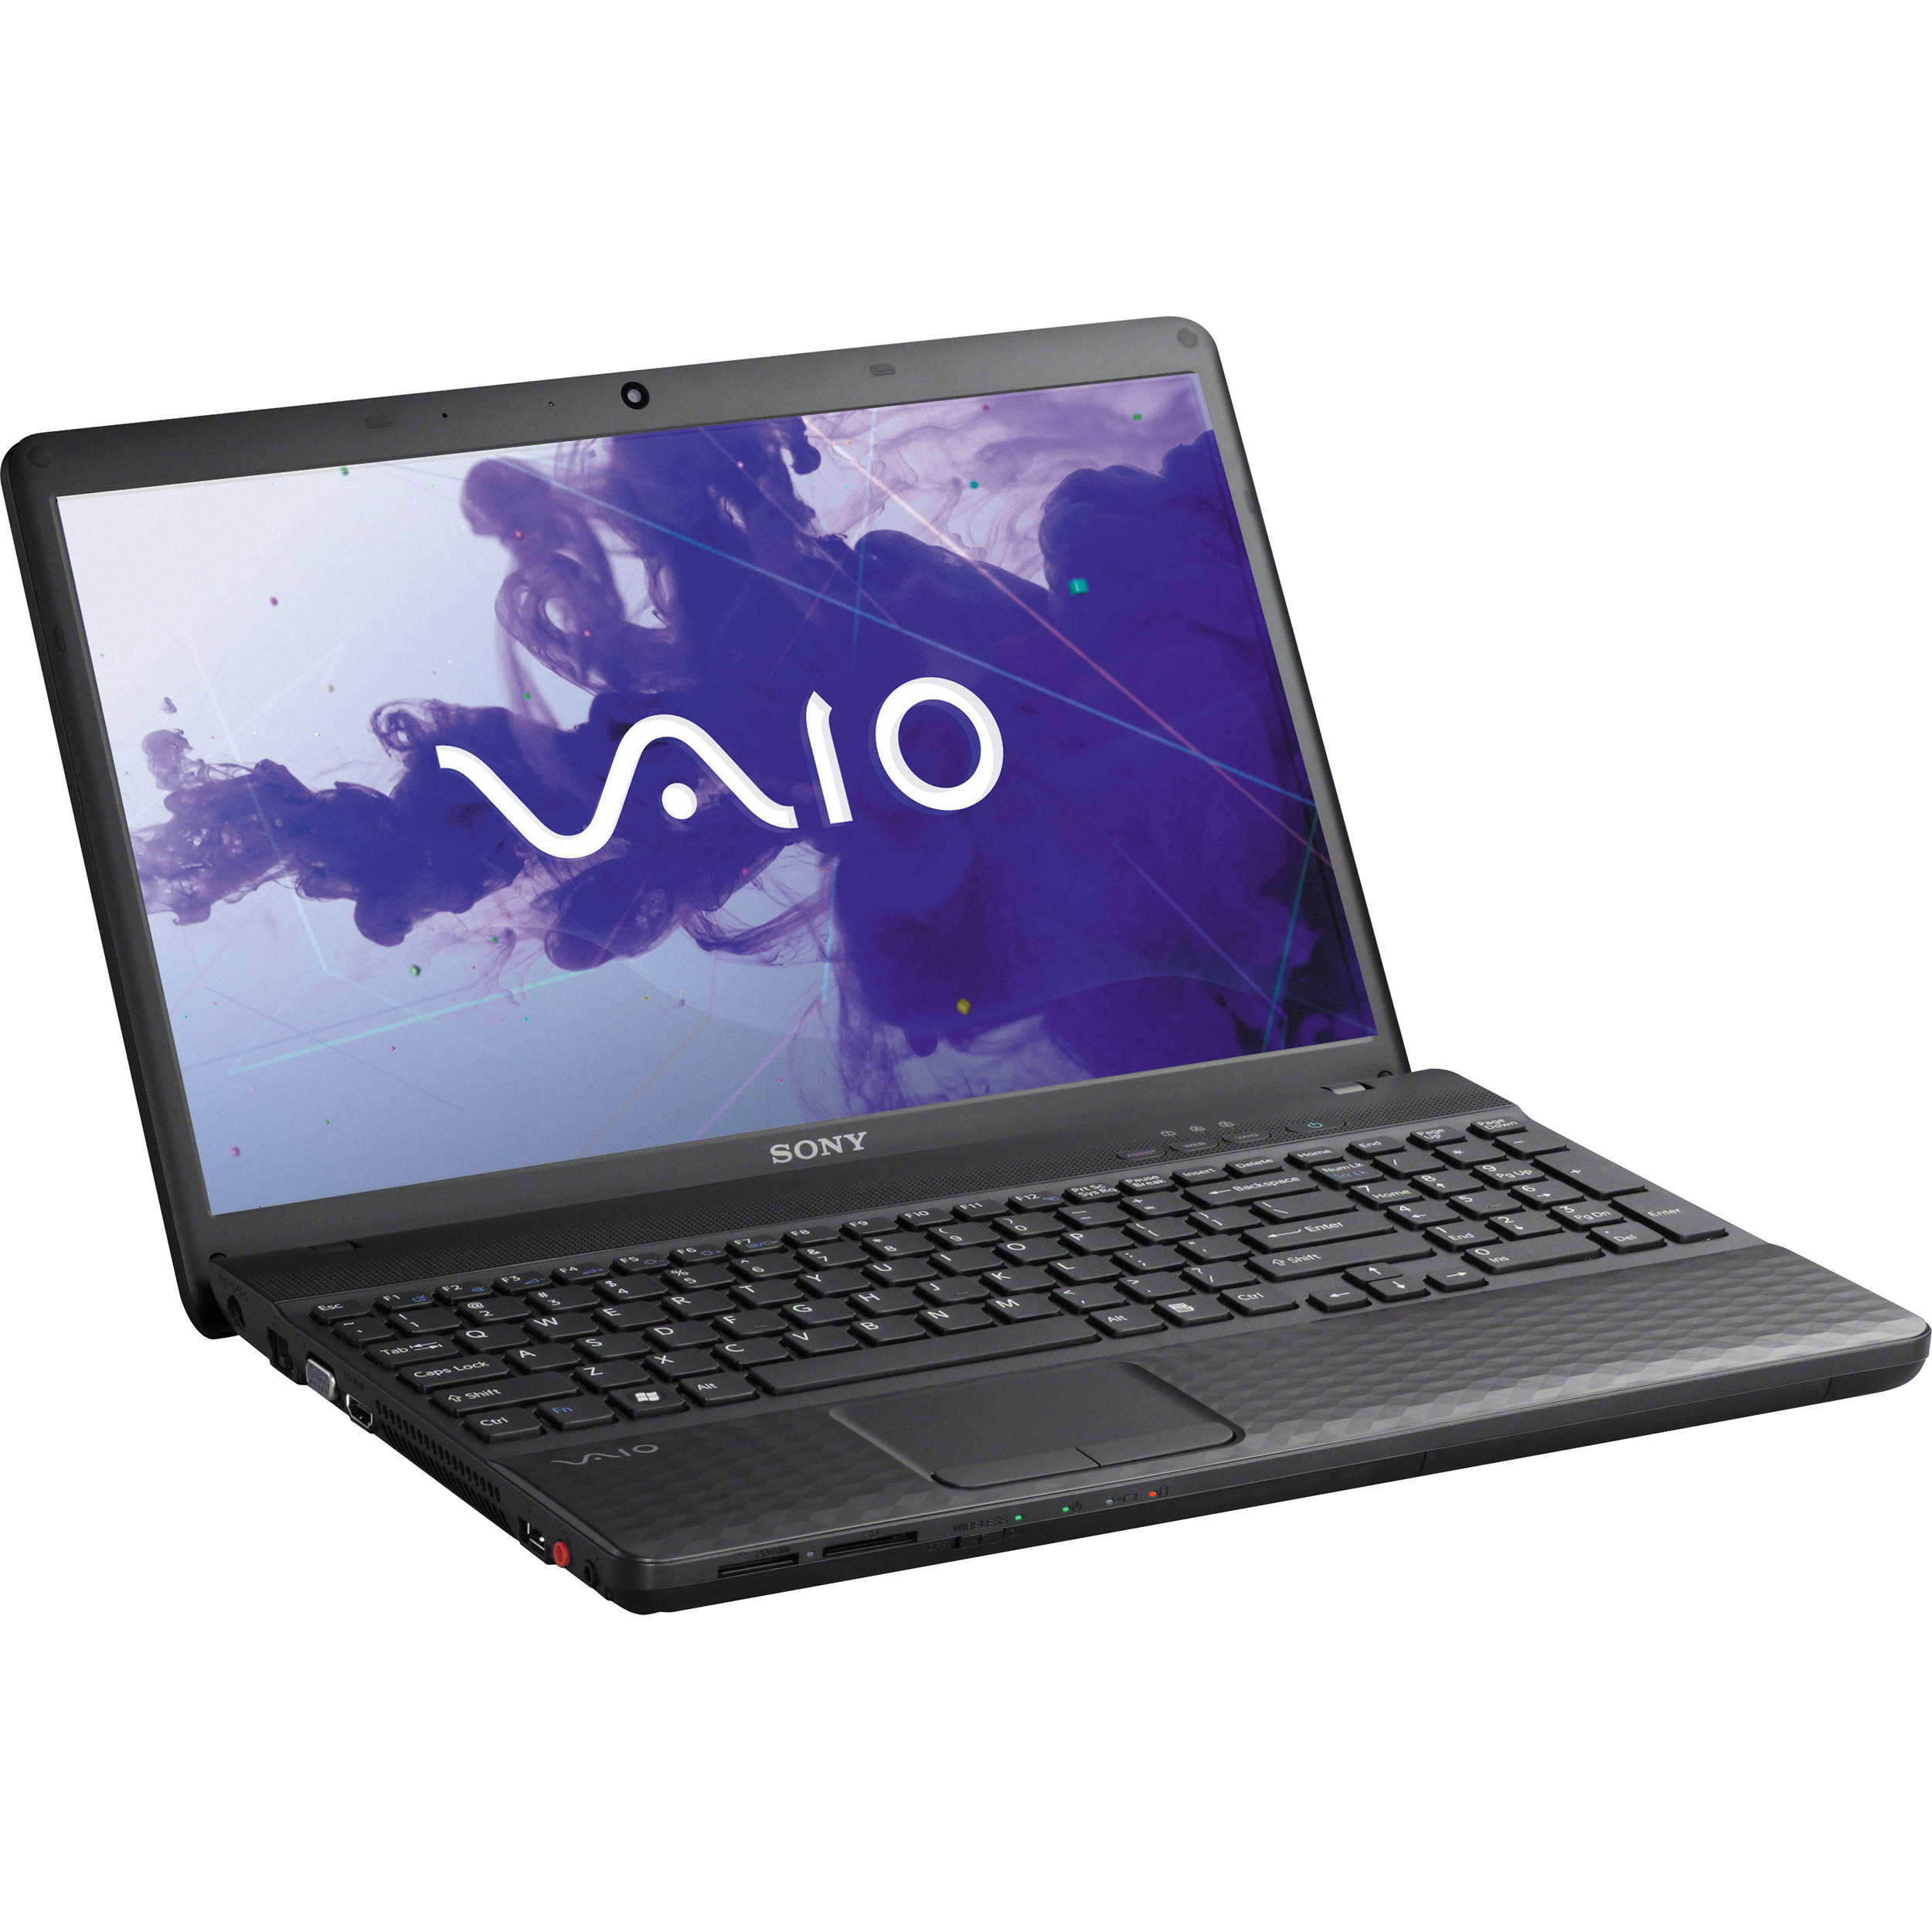 Driver for Sony Vaio VPCEH27FX Intel WiDi